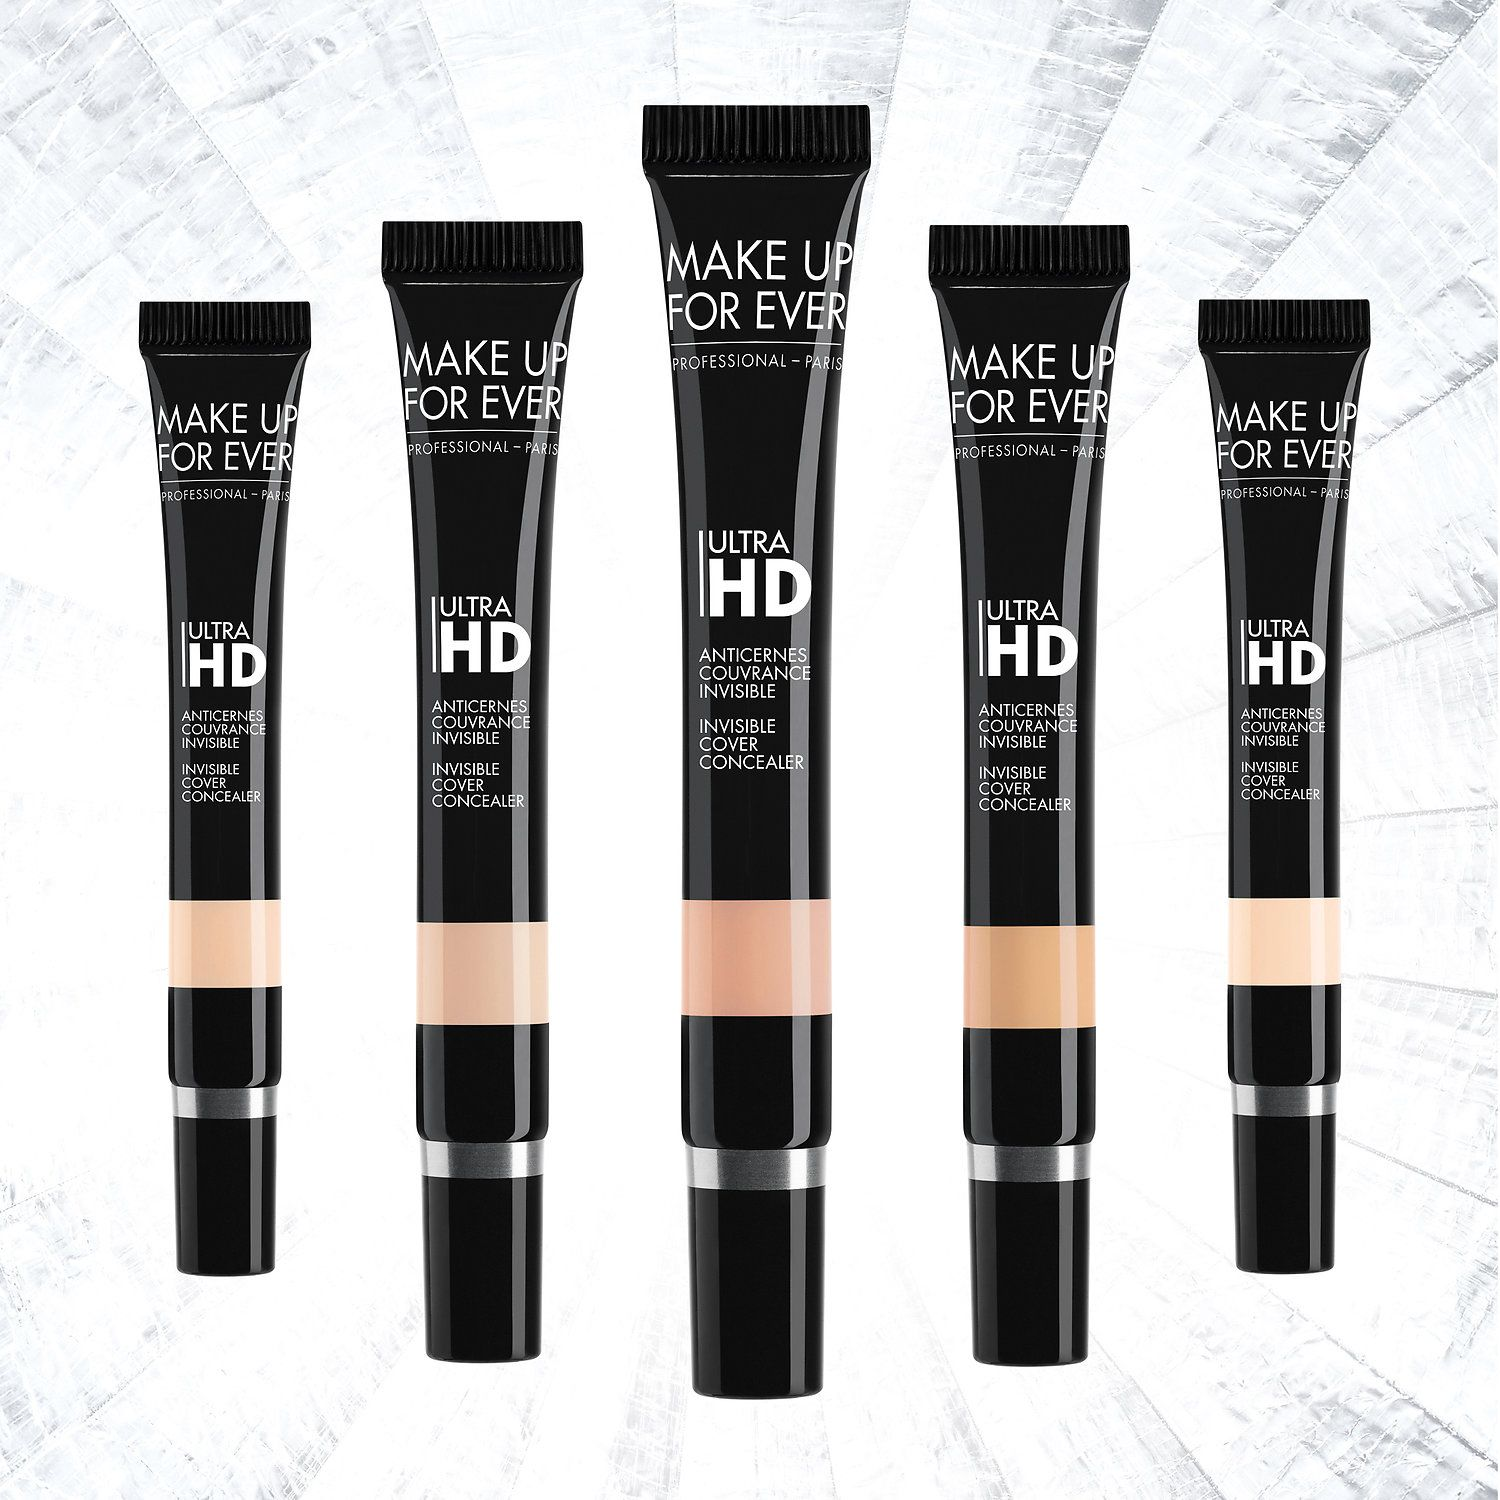 MAKE UP FOR EVER Ultra HD Concealer Hands down the BEST